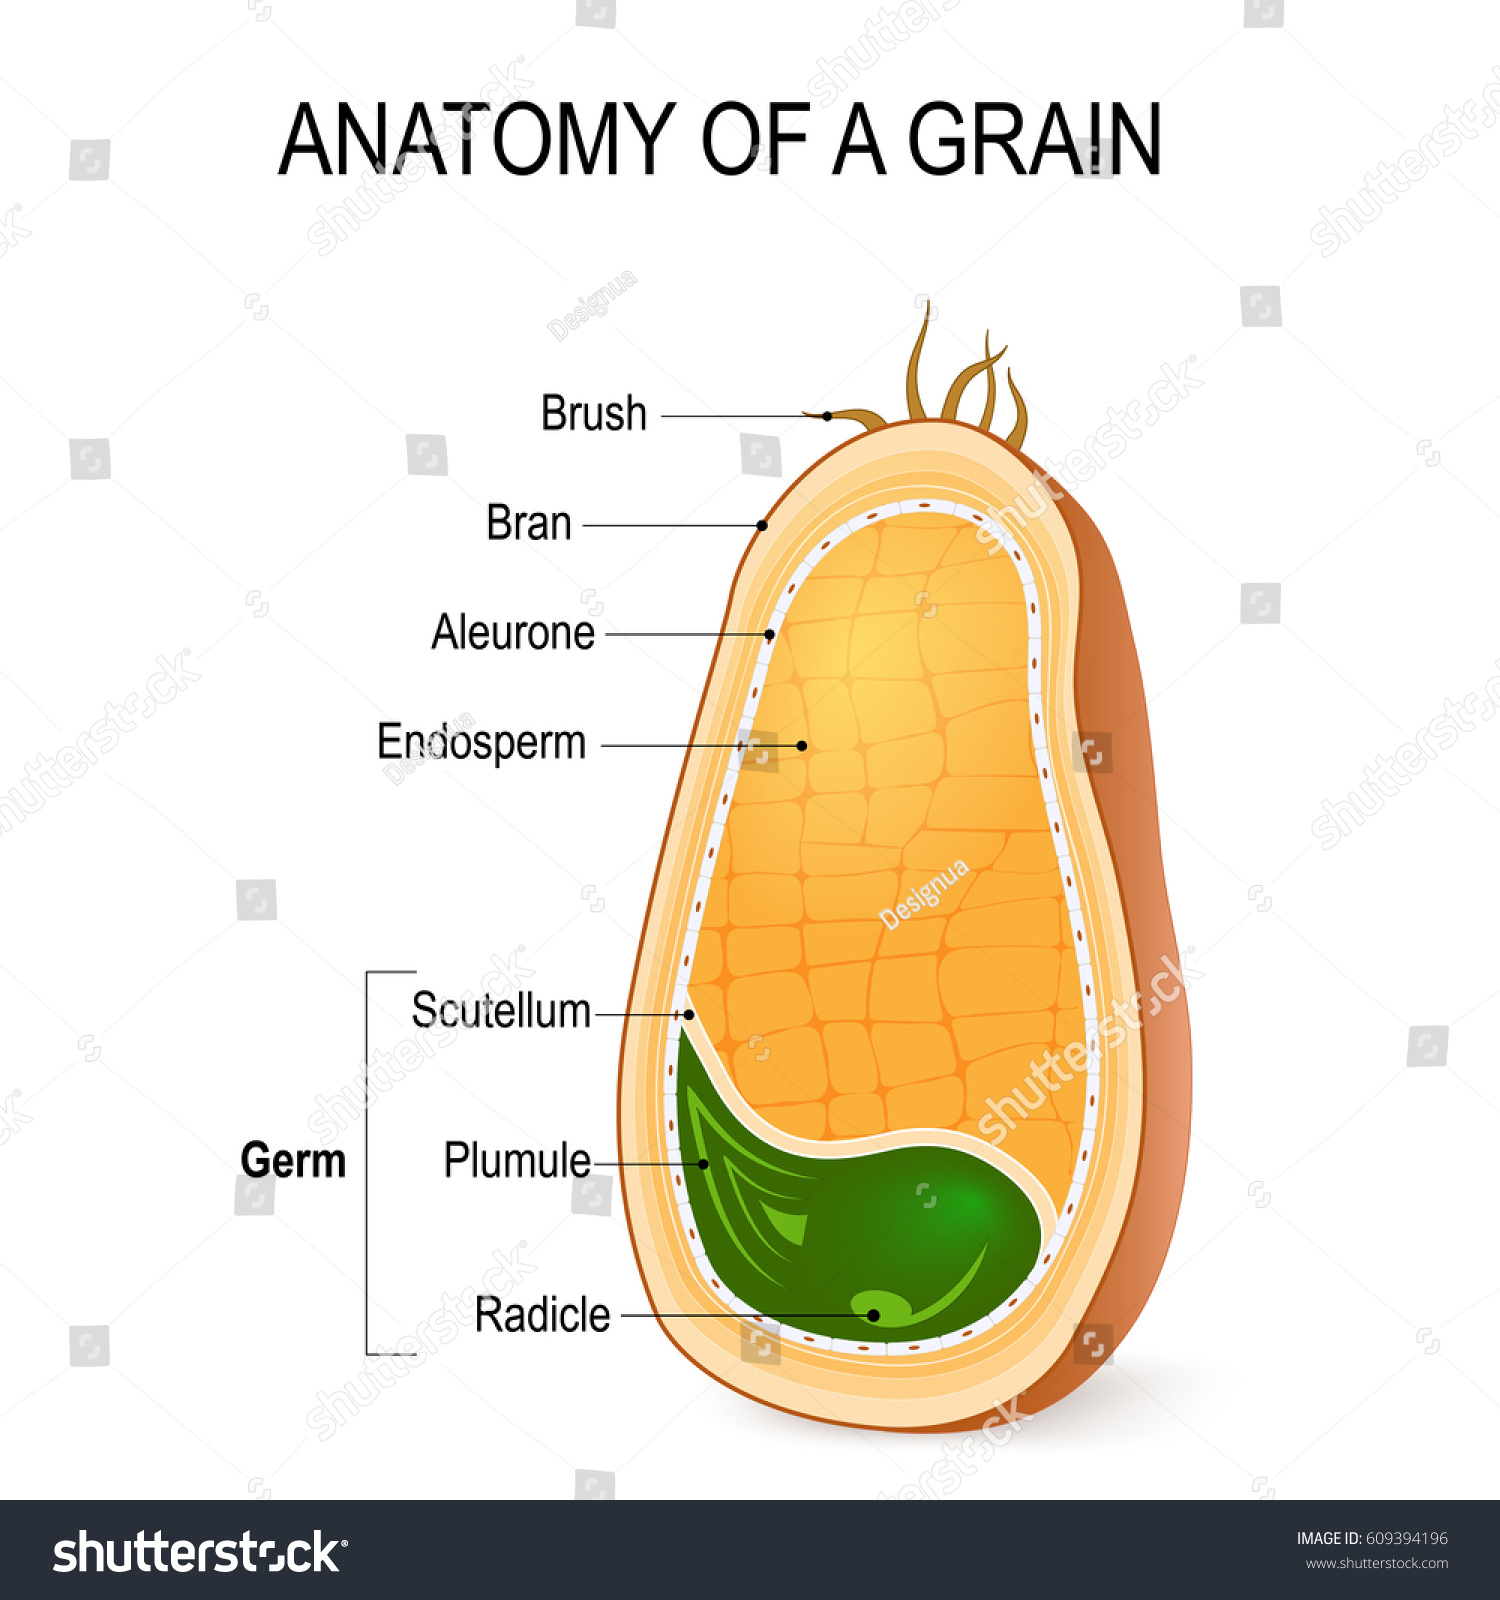 Anatomy Grain Cross Section Inside Seed Stock Photo (Photo, Vector ...